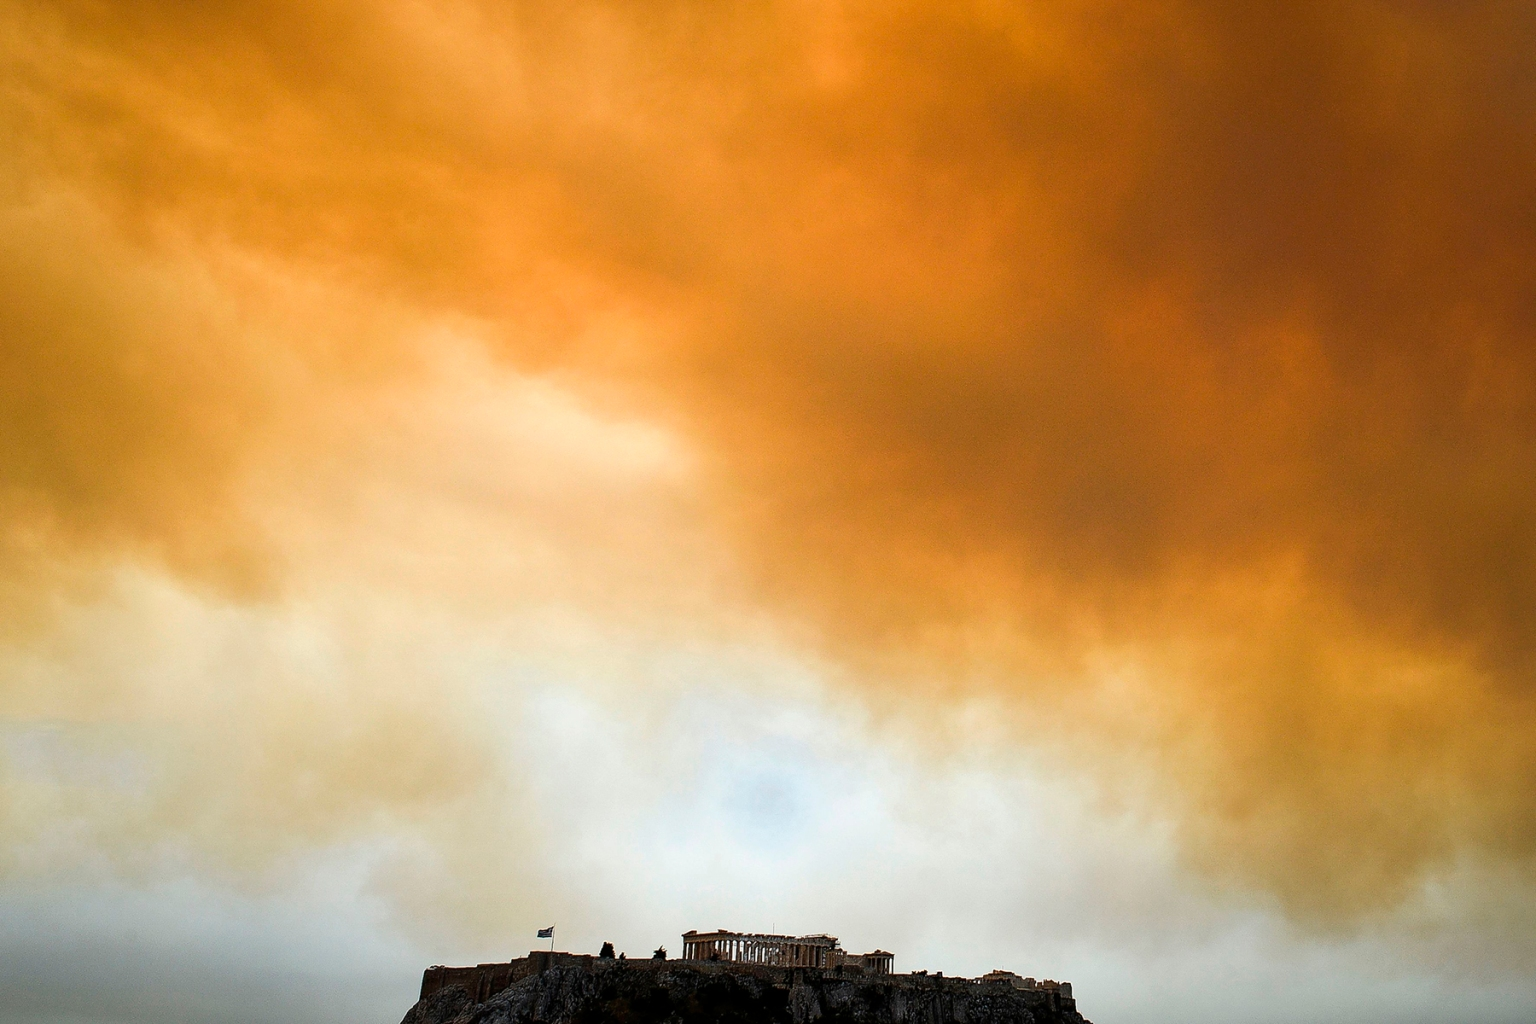 Smoke billows behind the Parthenon on the Acropolis in Athens during a nearby wildfire in Kineta, Greece, on July 23. Wildfires killed at least 91 people in villages surrounding Athens, devouring homes, cars, and forests. VALERIE GACHE/AFP/GETTY IMAGES